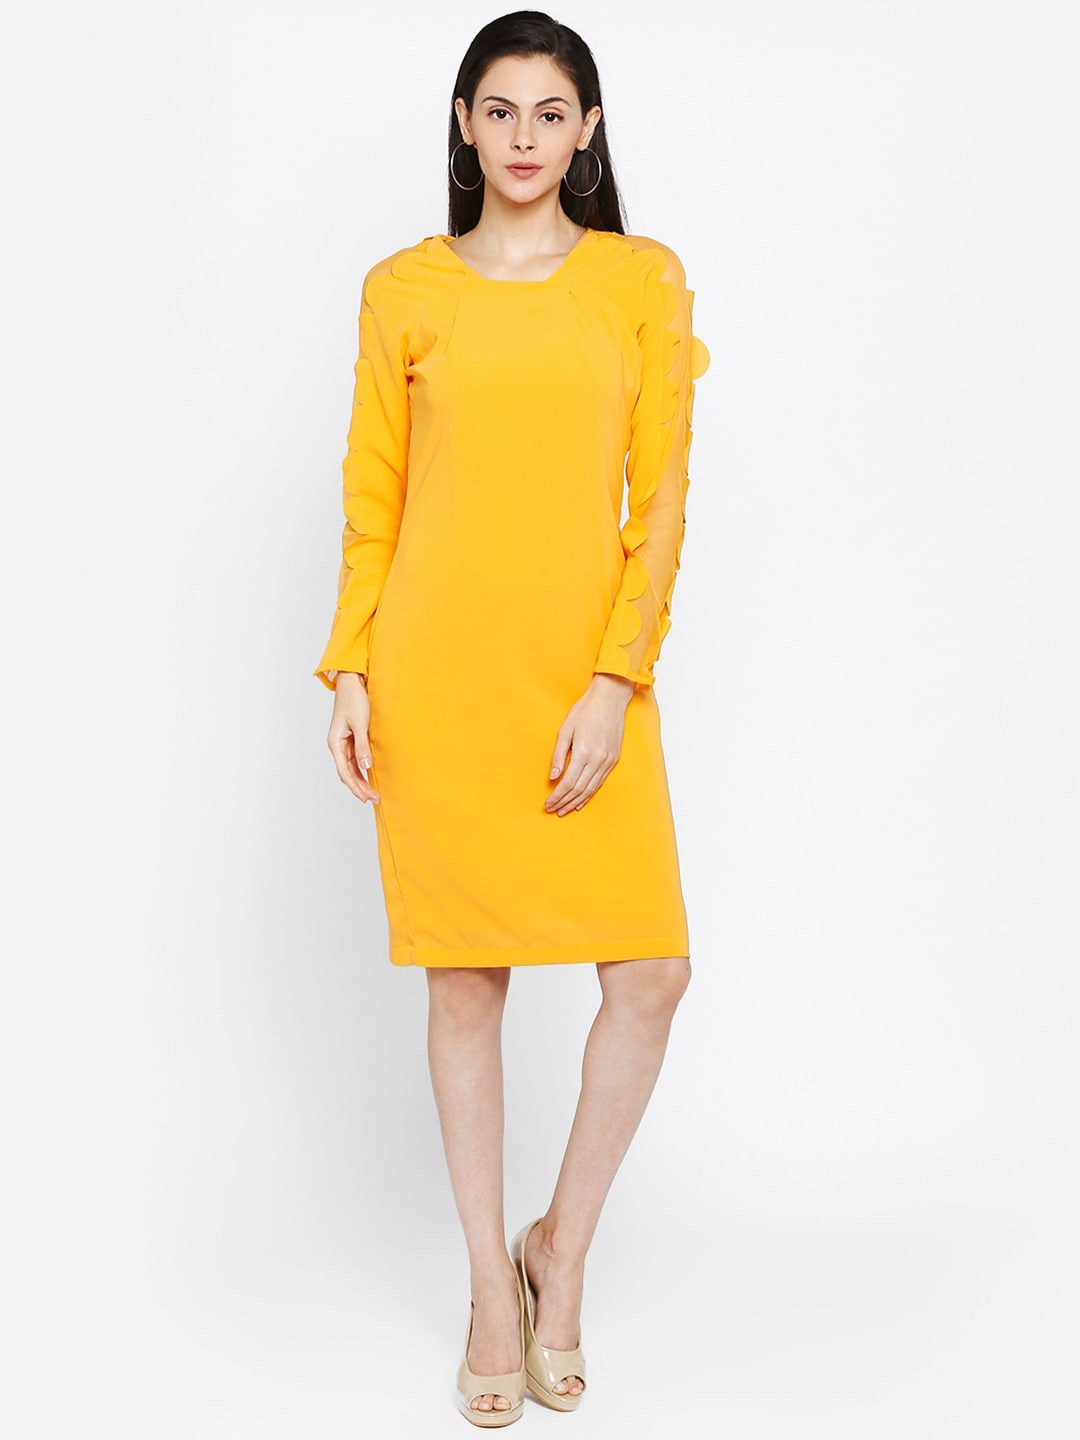 Park Avenue Woman Yellow Solid Sheath Dress image